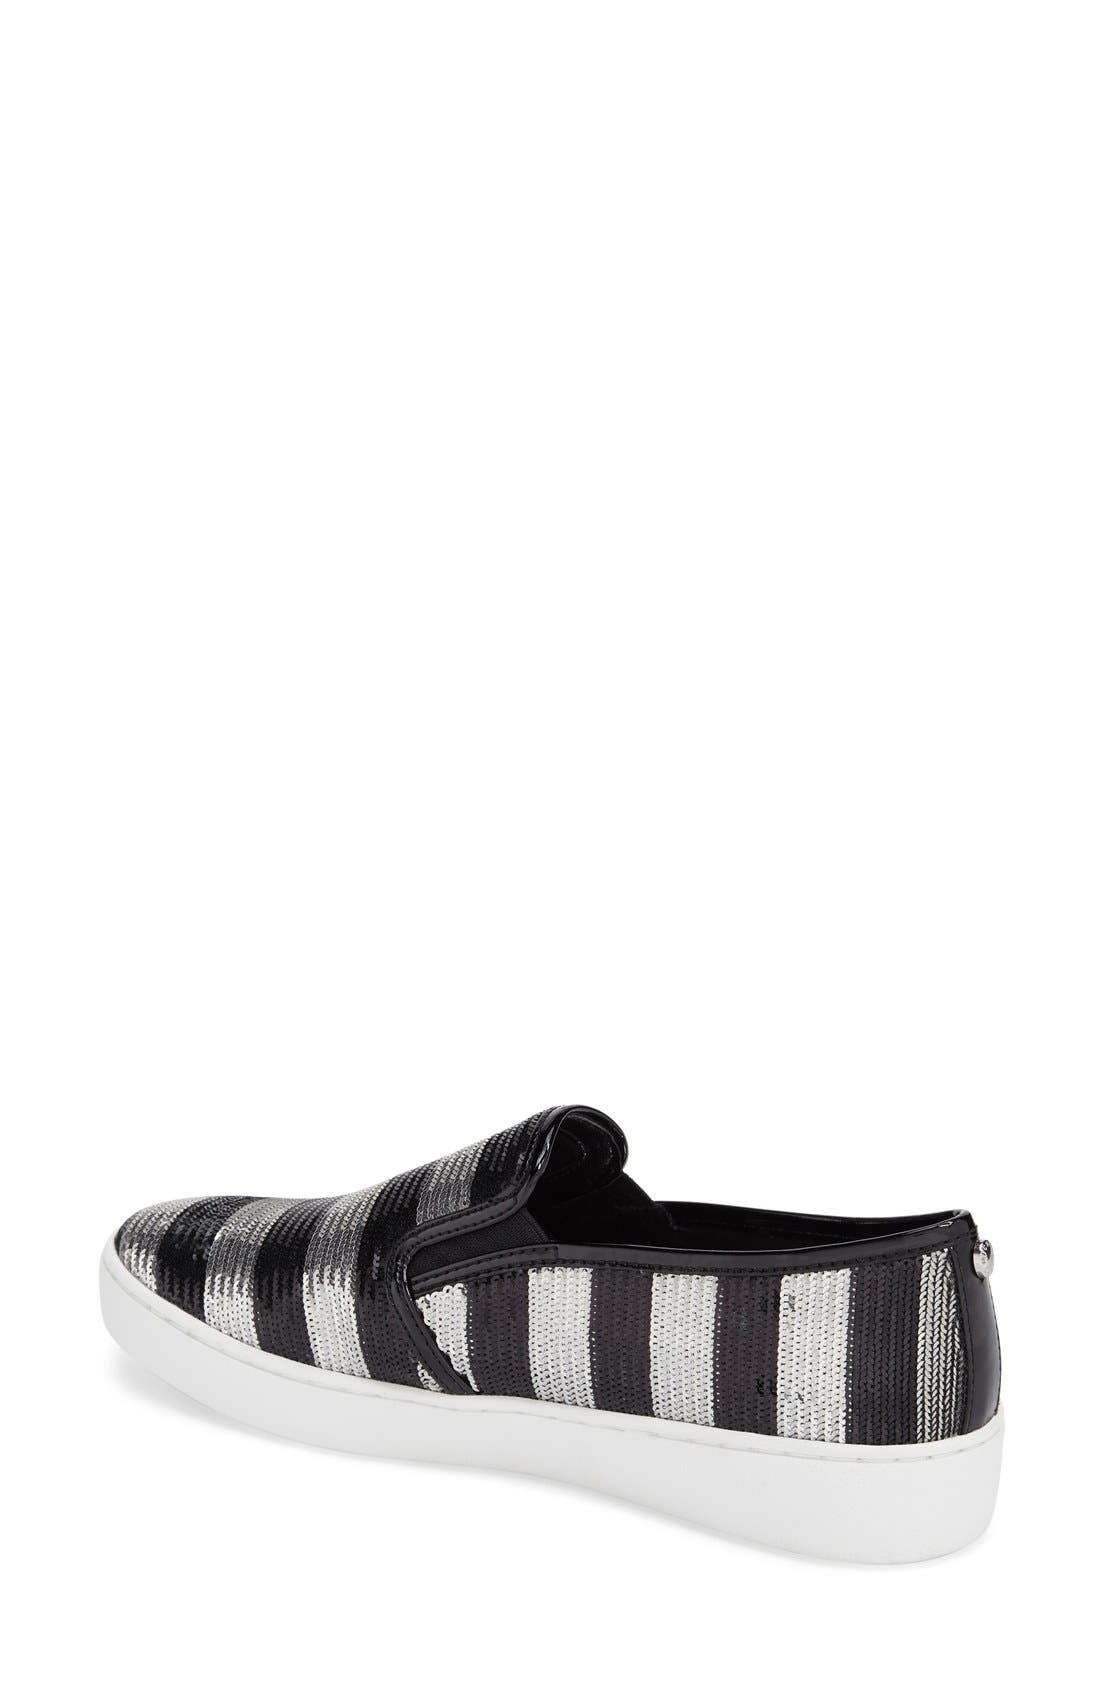 Keaton Slip-On Sneaker,                             Alternate thumbnail 60, color,